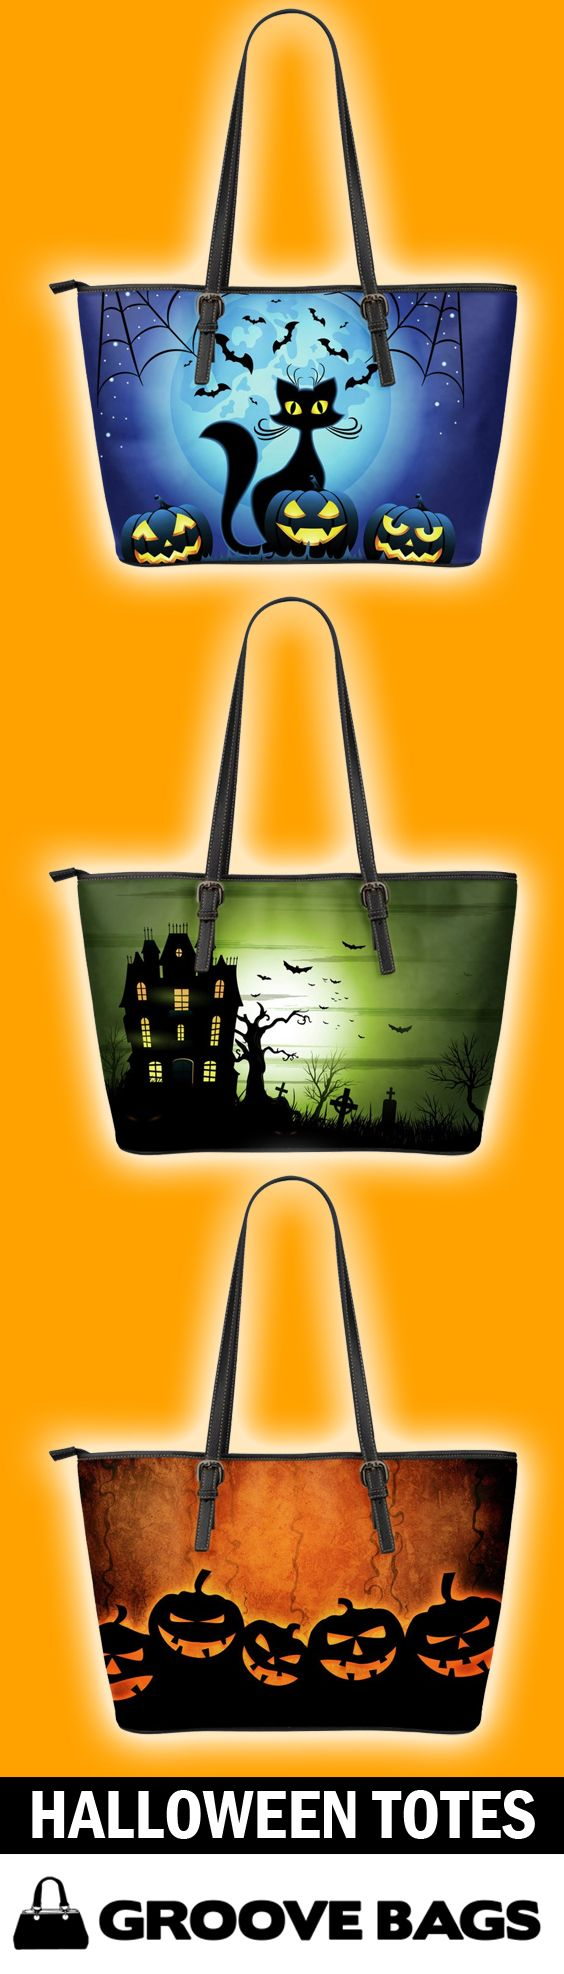 get 20 spirit of halloween ideas on pinterest without signing up